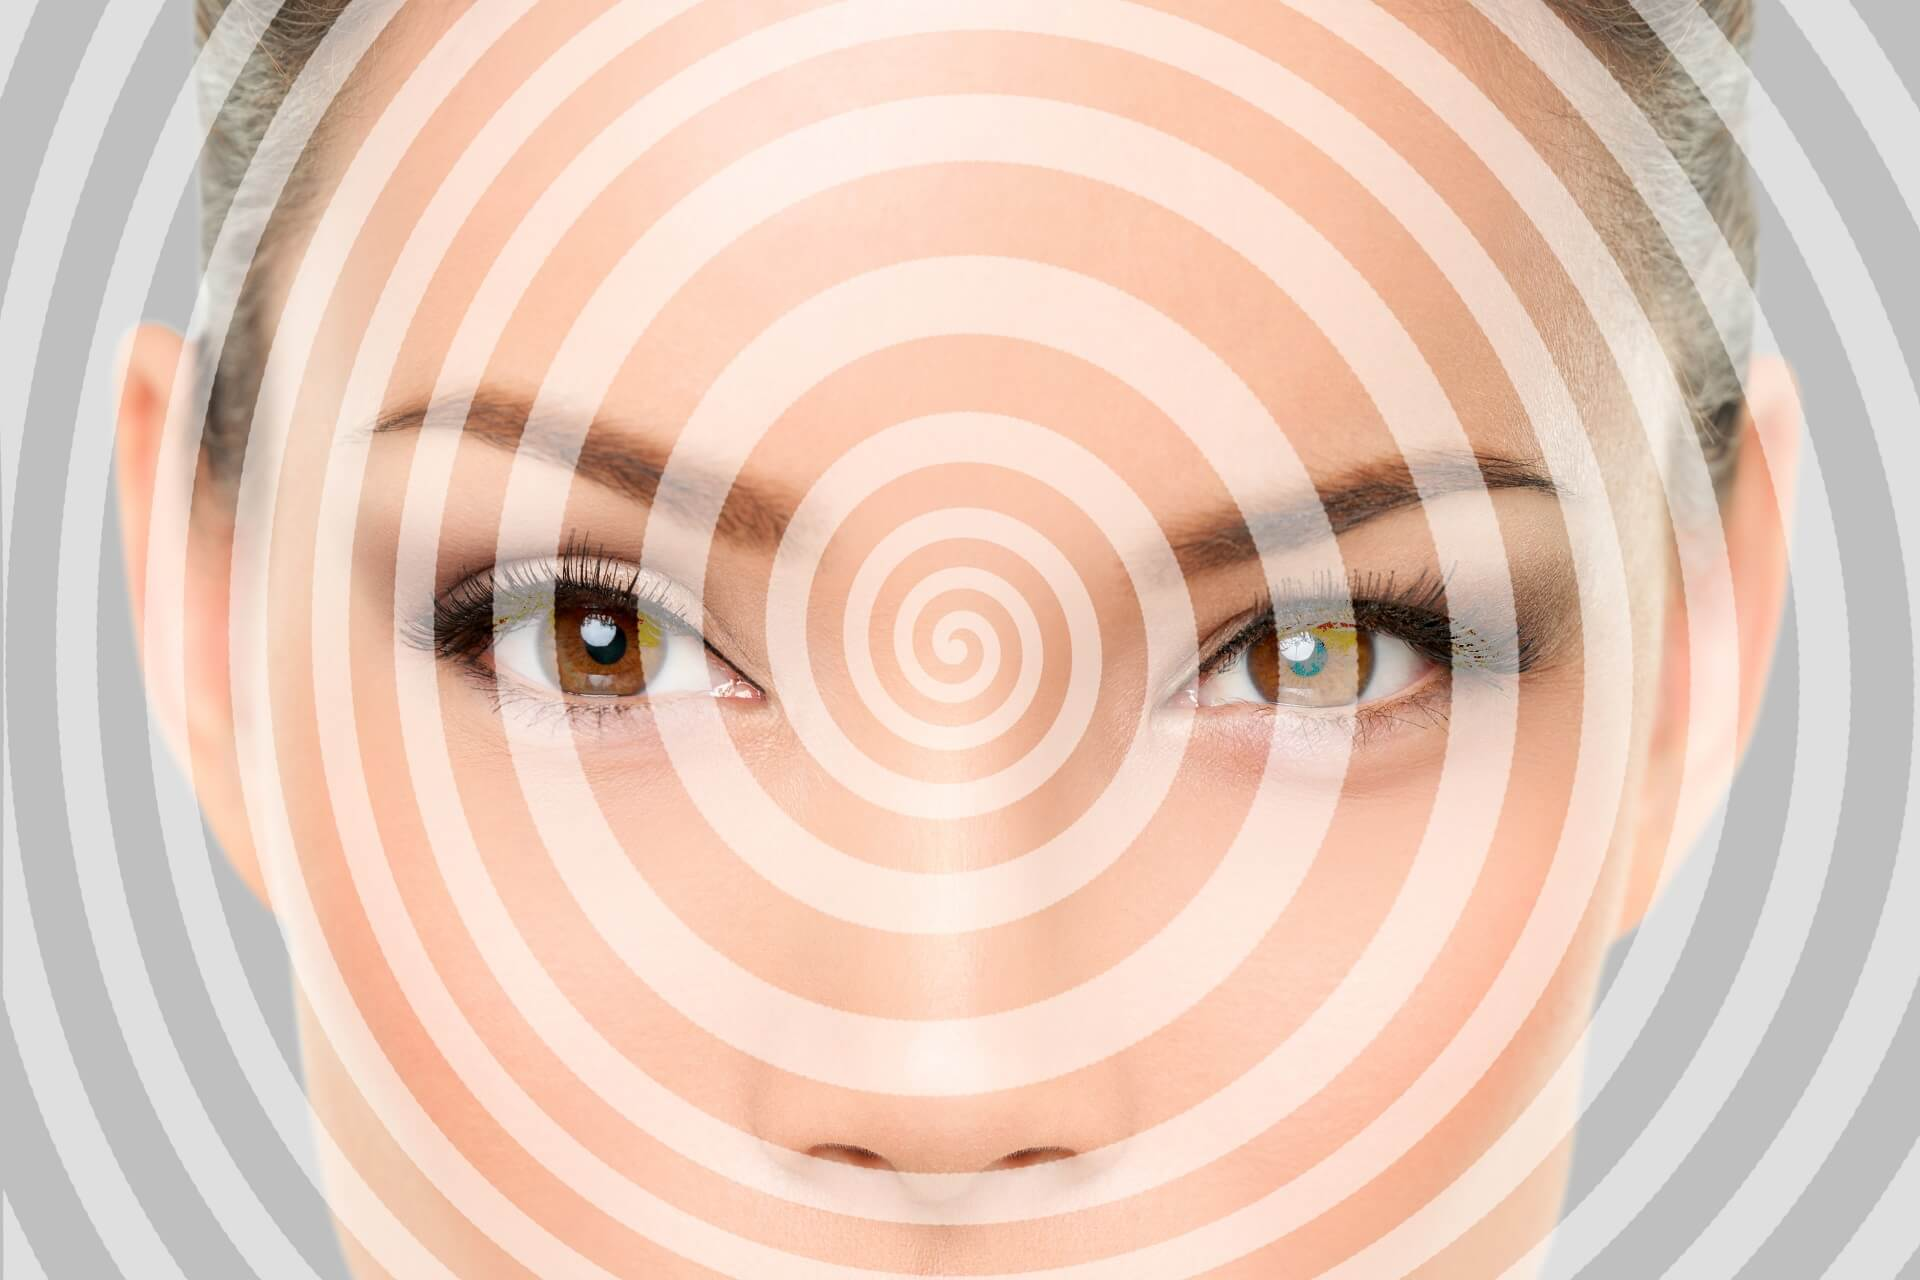 hypnosis circle in front of a woman's eyes